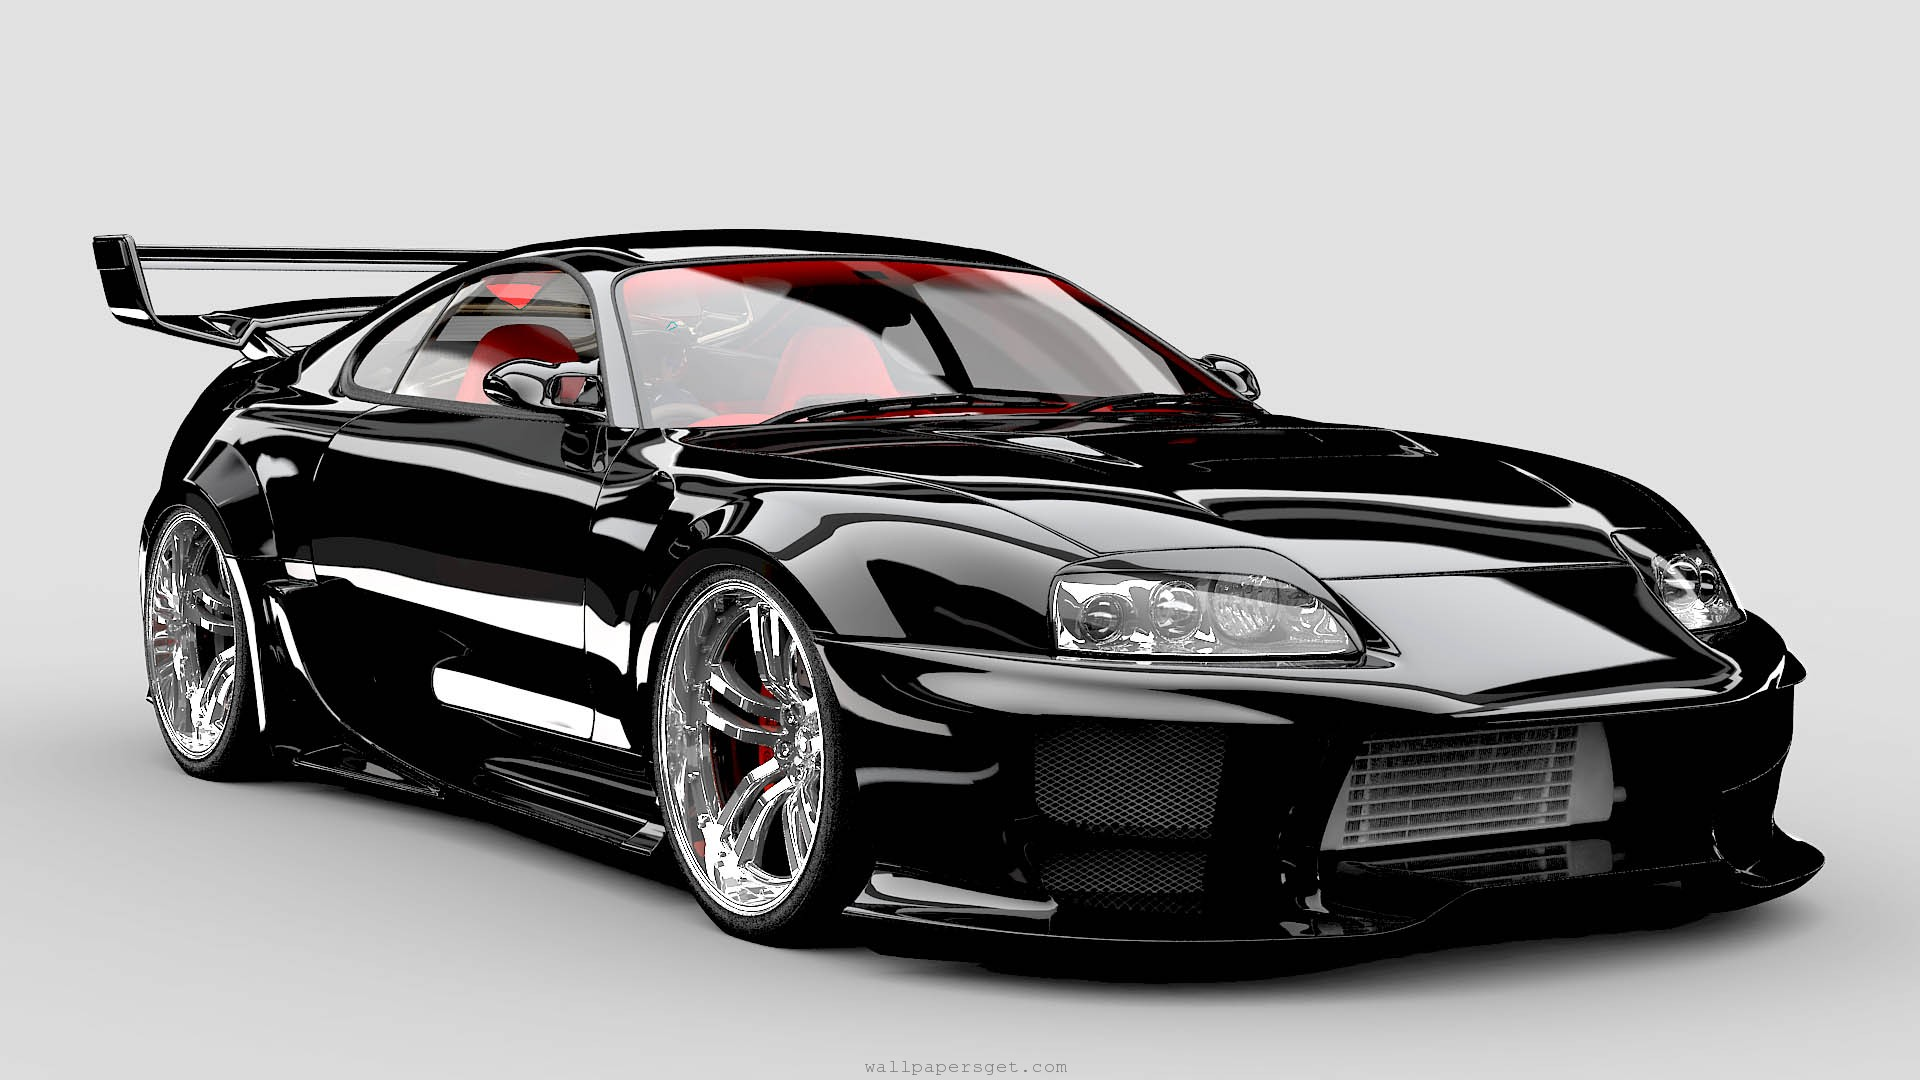 Supra Sports Car-Wallpapers